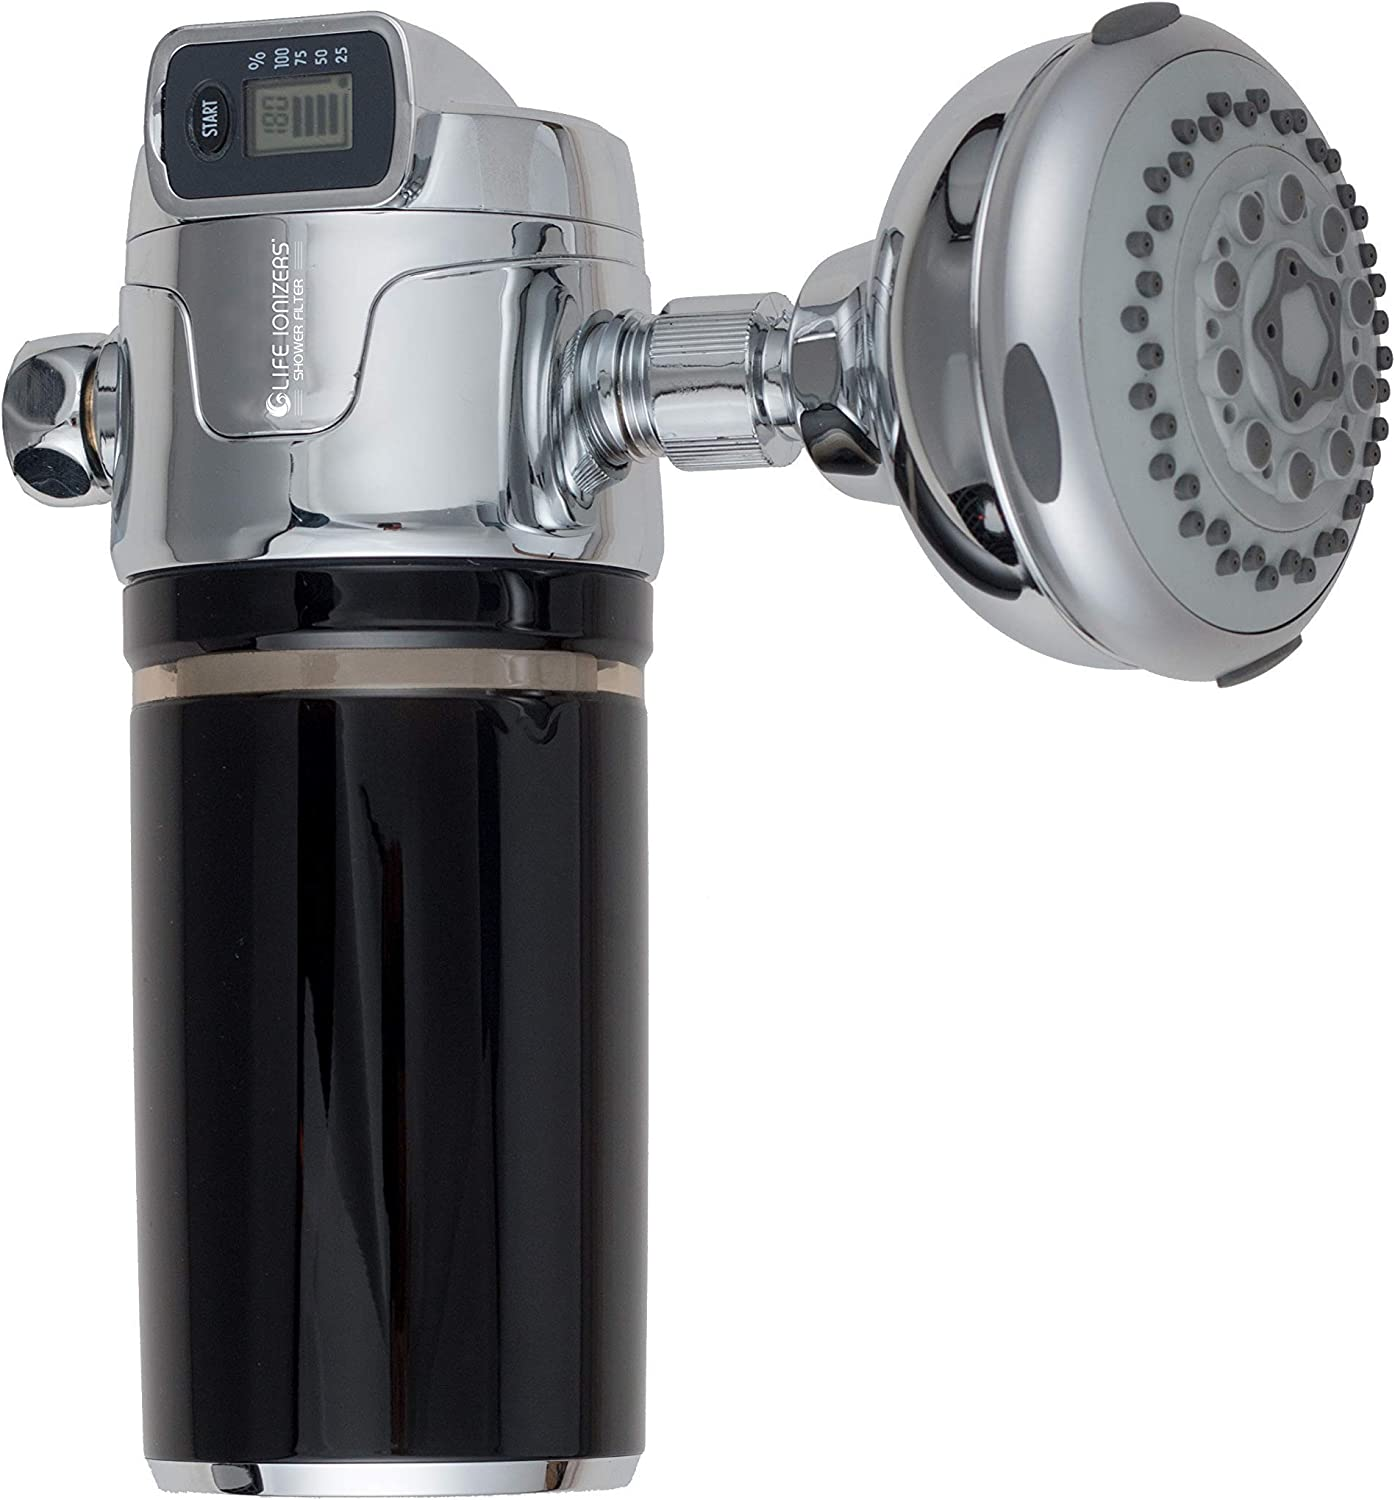 TheSafetyHouse Dual Water Filtration System 15 Gal//min for Decontamination Shower